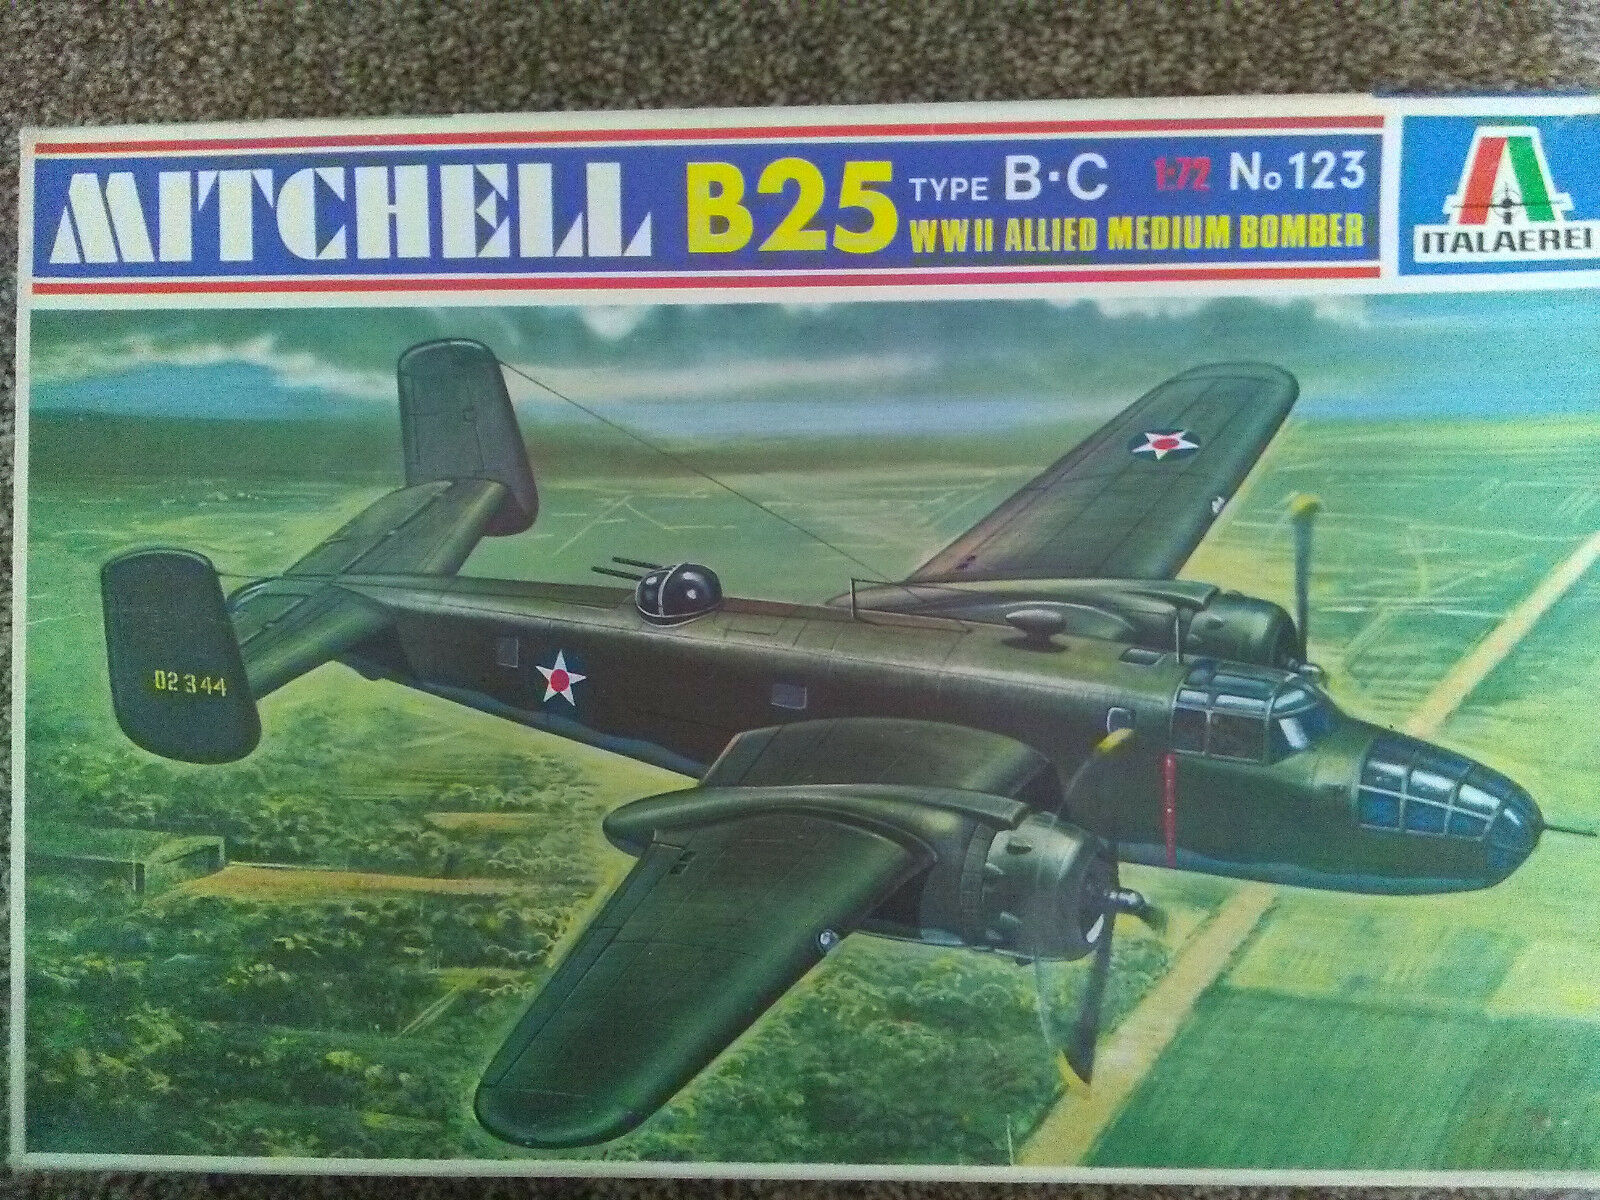 VINTAGE ITALAEREI 1 72 B25 MITCHELL TYPE B-C WITH DISPLAY STAND KIT NO. 123